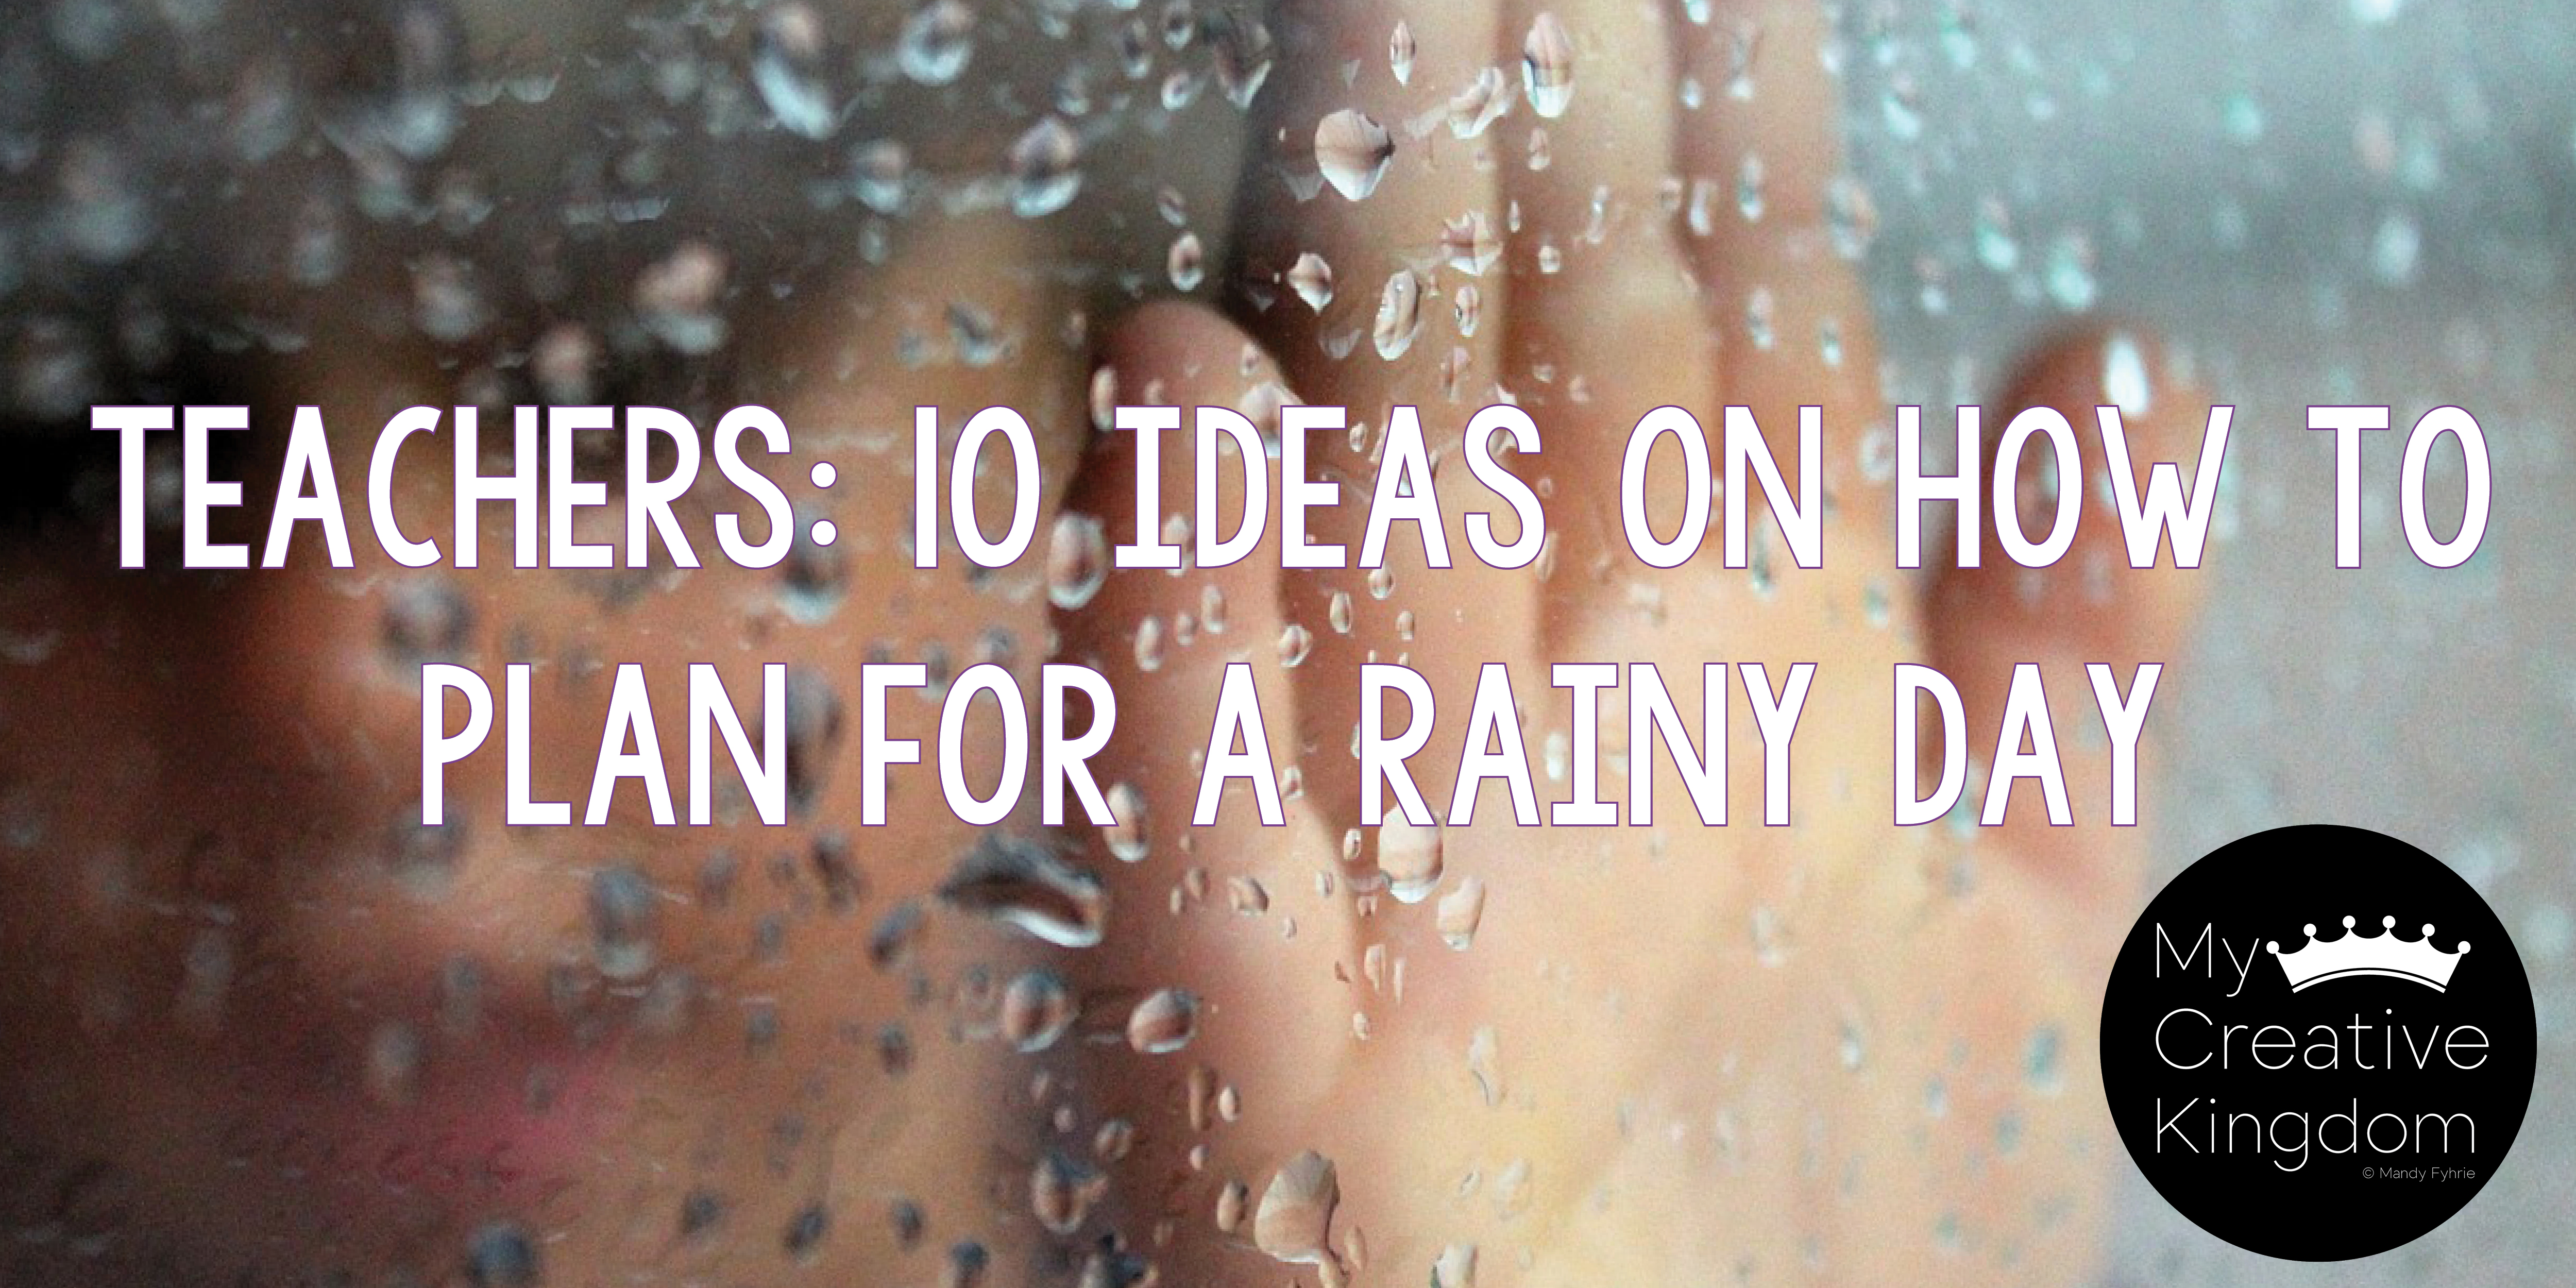 Teachers: 10 Ideas on How to Plan for Rainy Days